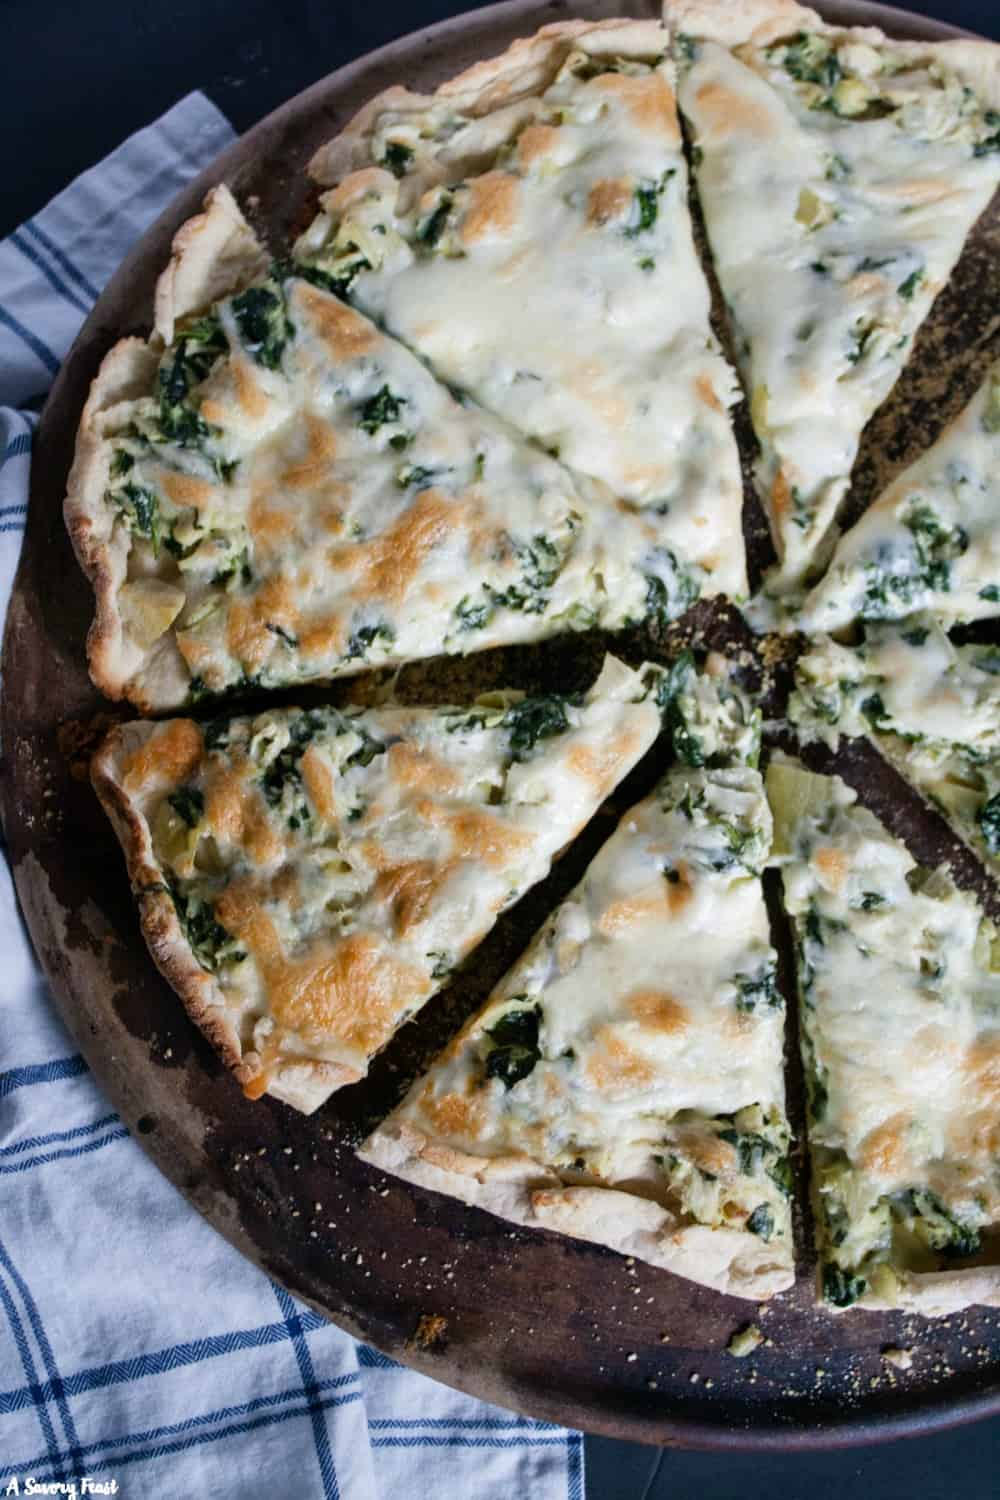 Homemade pizza night just got even better with this Chicken, Spinach & Artichoke Pizza. This new twist on spinach and artichoke dip puts it in pizza form with chicken to make it a complete meal.